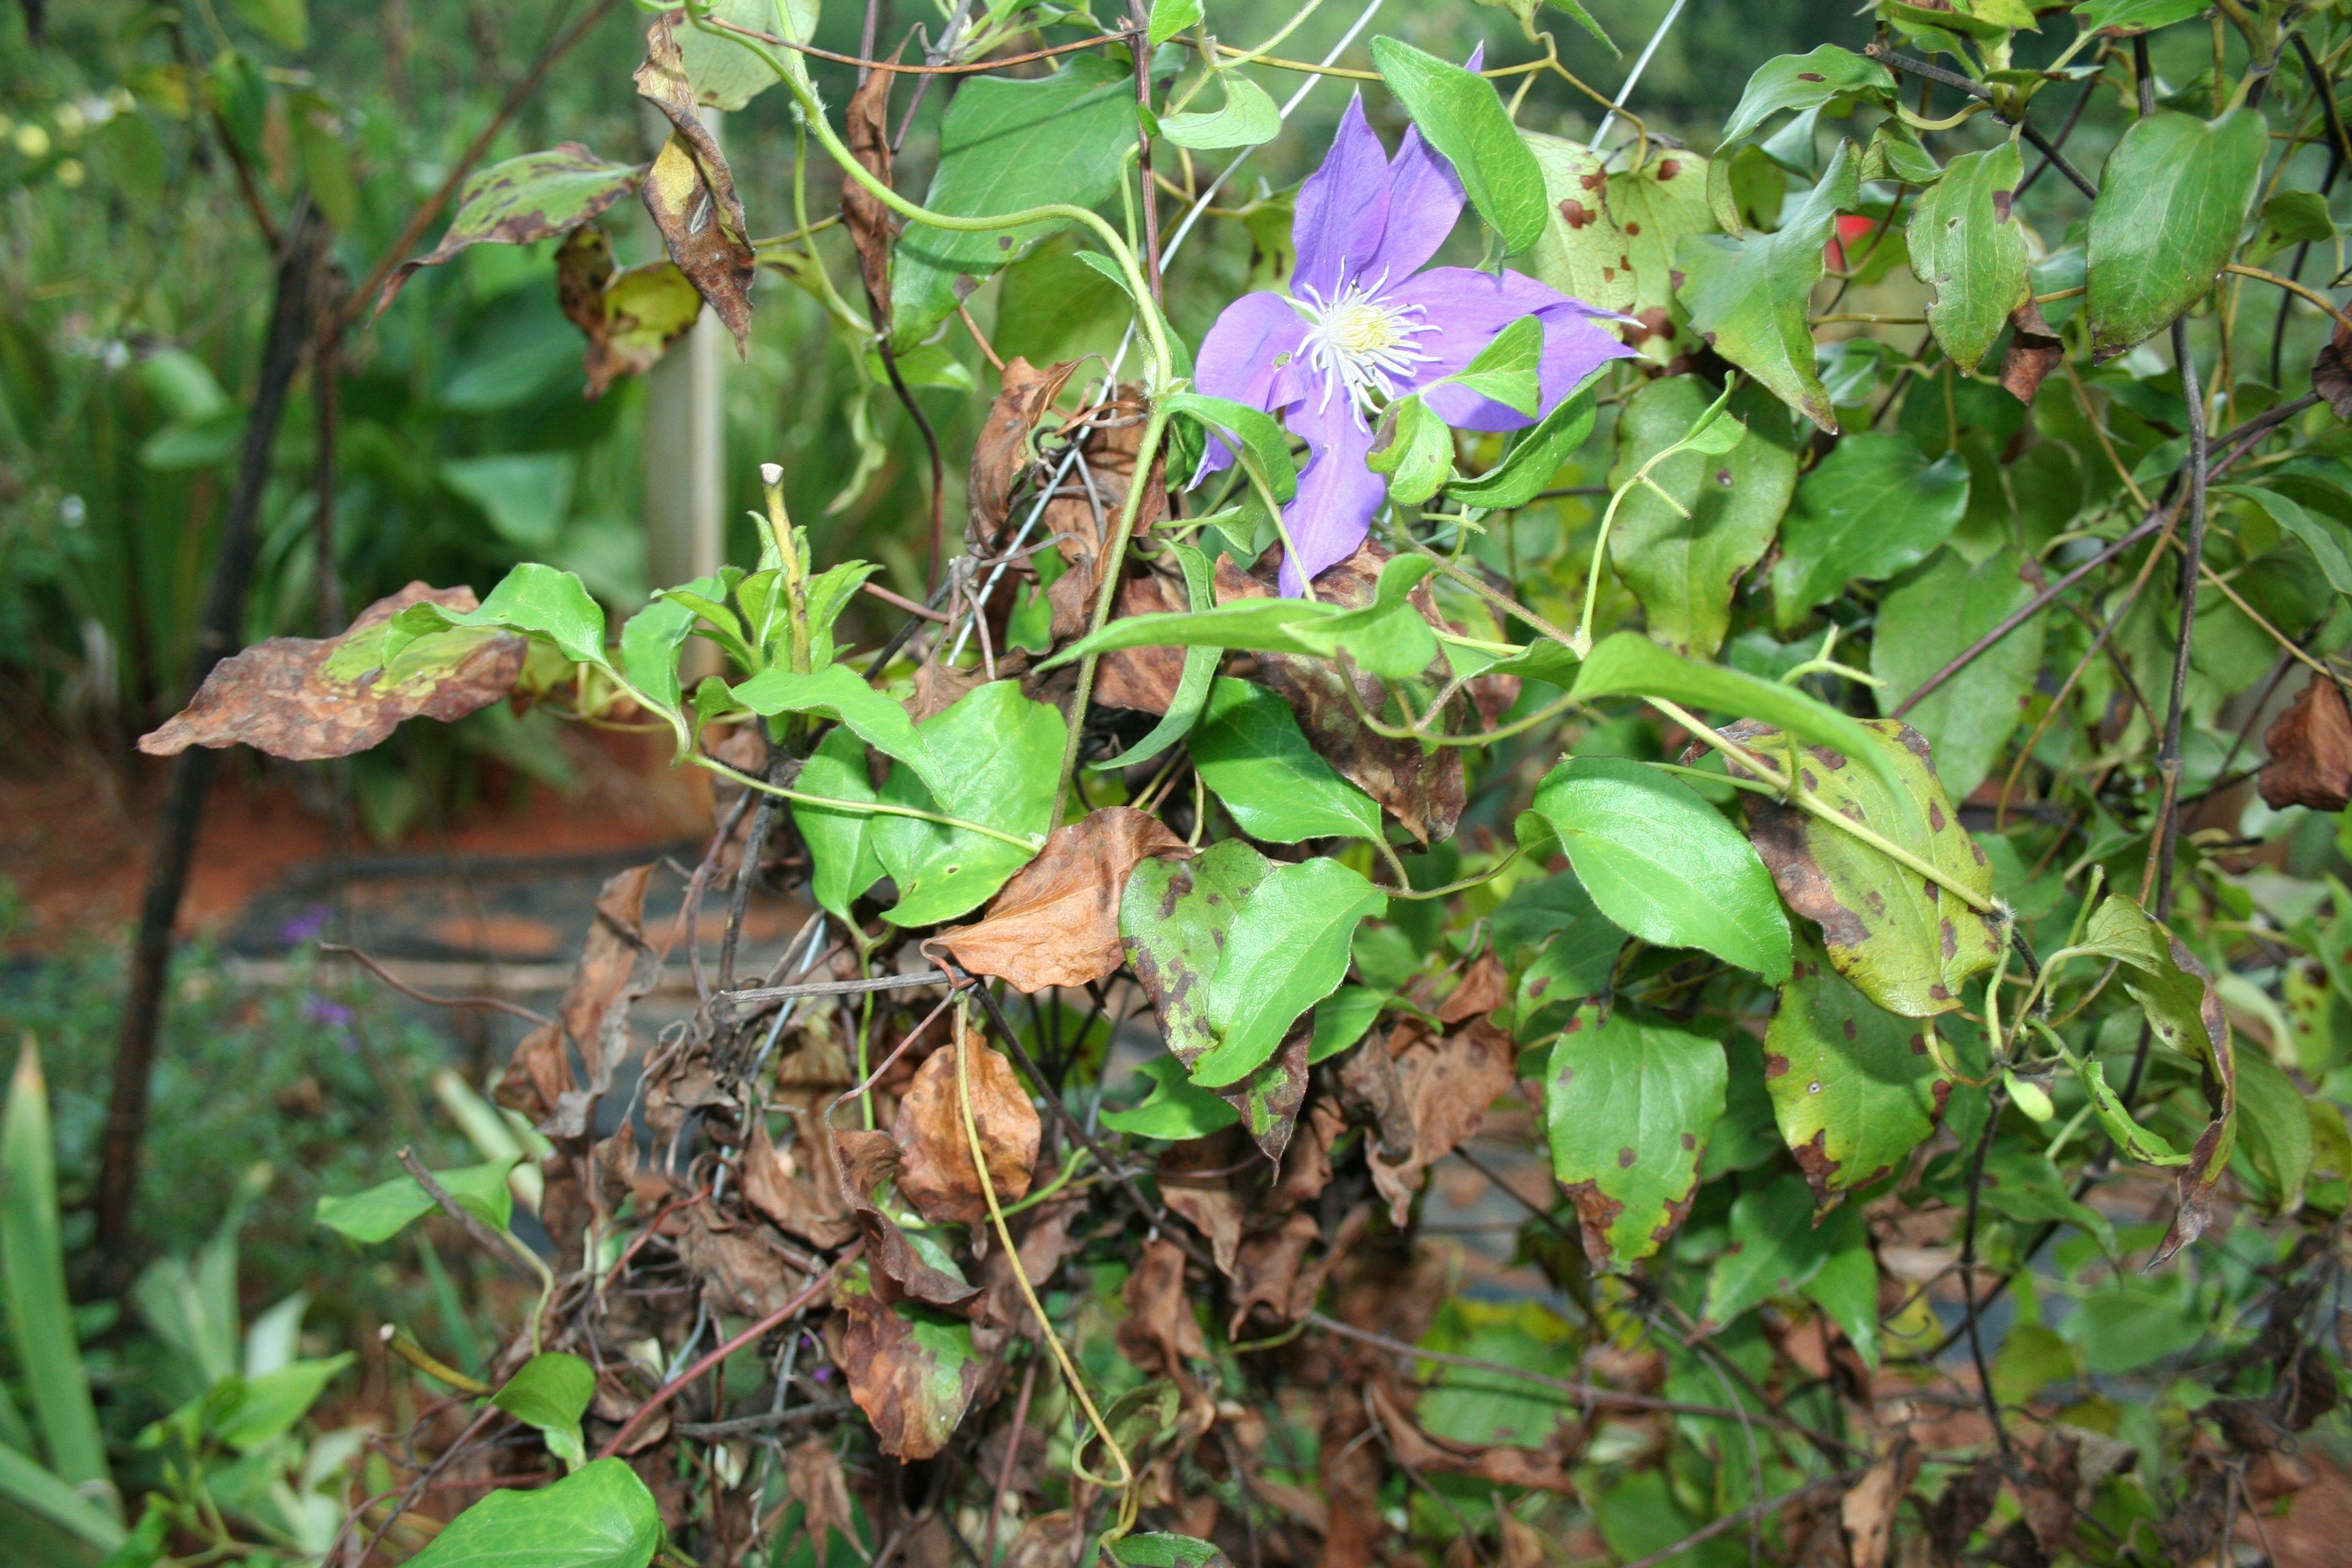 Wilt Treatment – How To Prevent Wilt In Clematis Vines Clematis wilt is a devastating condition that causes clematis vines to shrivel and die, usually in early summer. Read here to learn more about the causes of clematis wilt and how to prevent it.Clematis wilt is a devastating condition that causes clematis vines to shrivel and die, usually in early su...